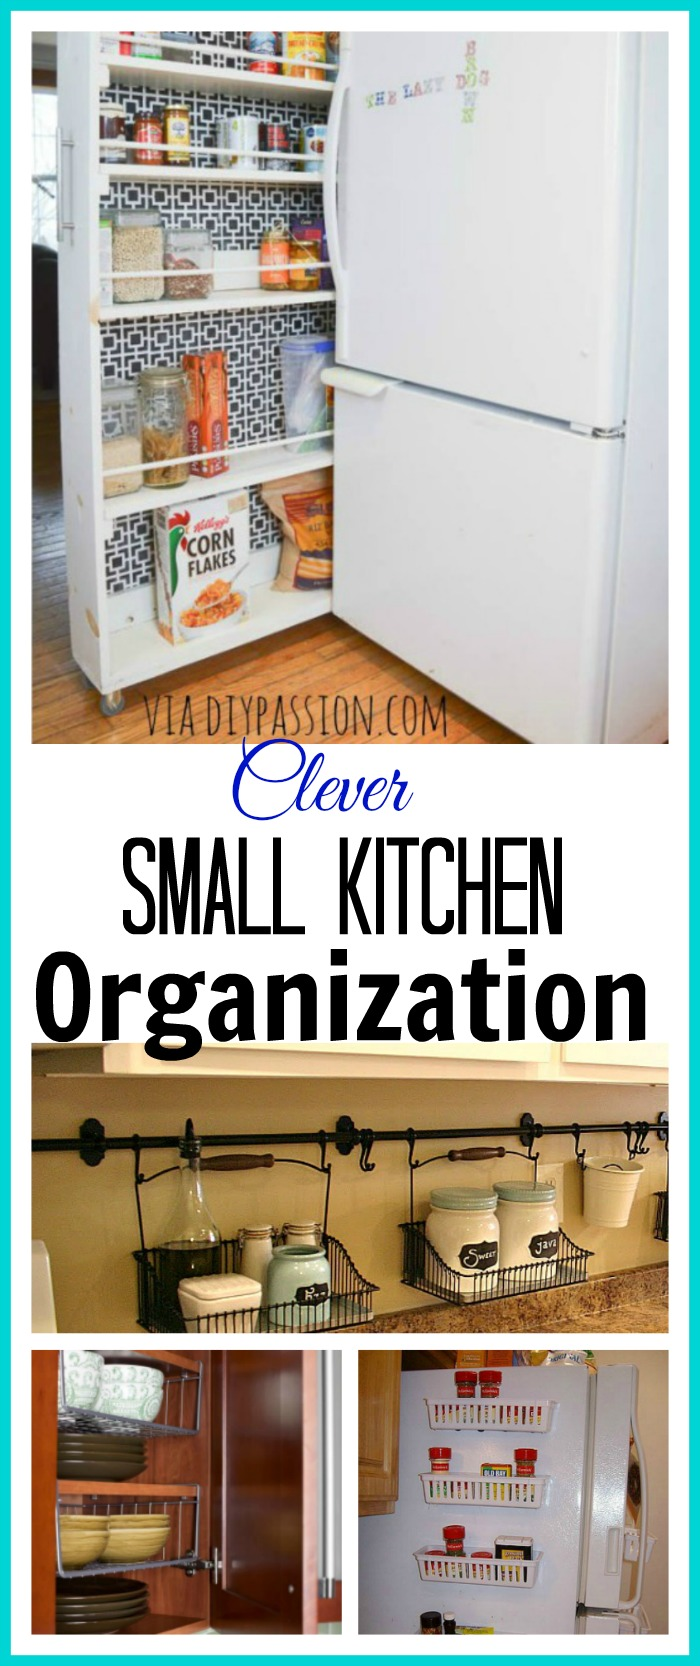 Tips: Organize the Kitchen with Pots!